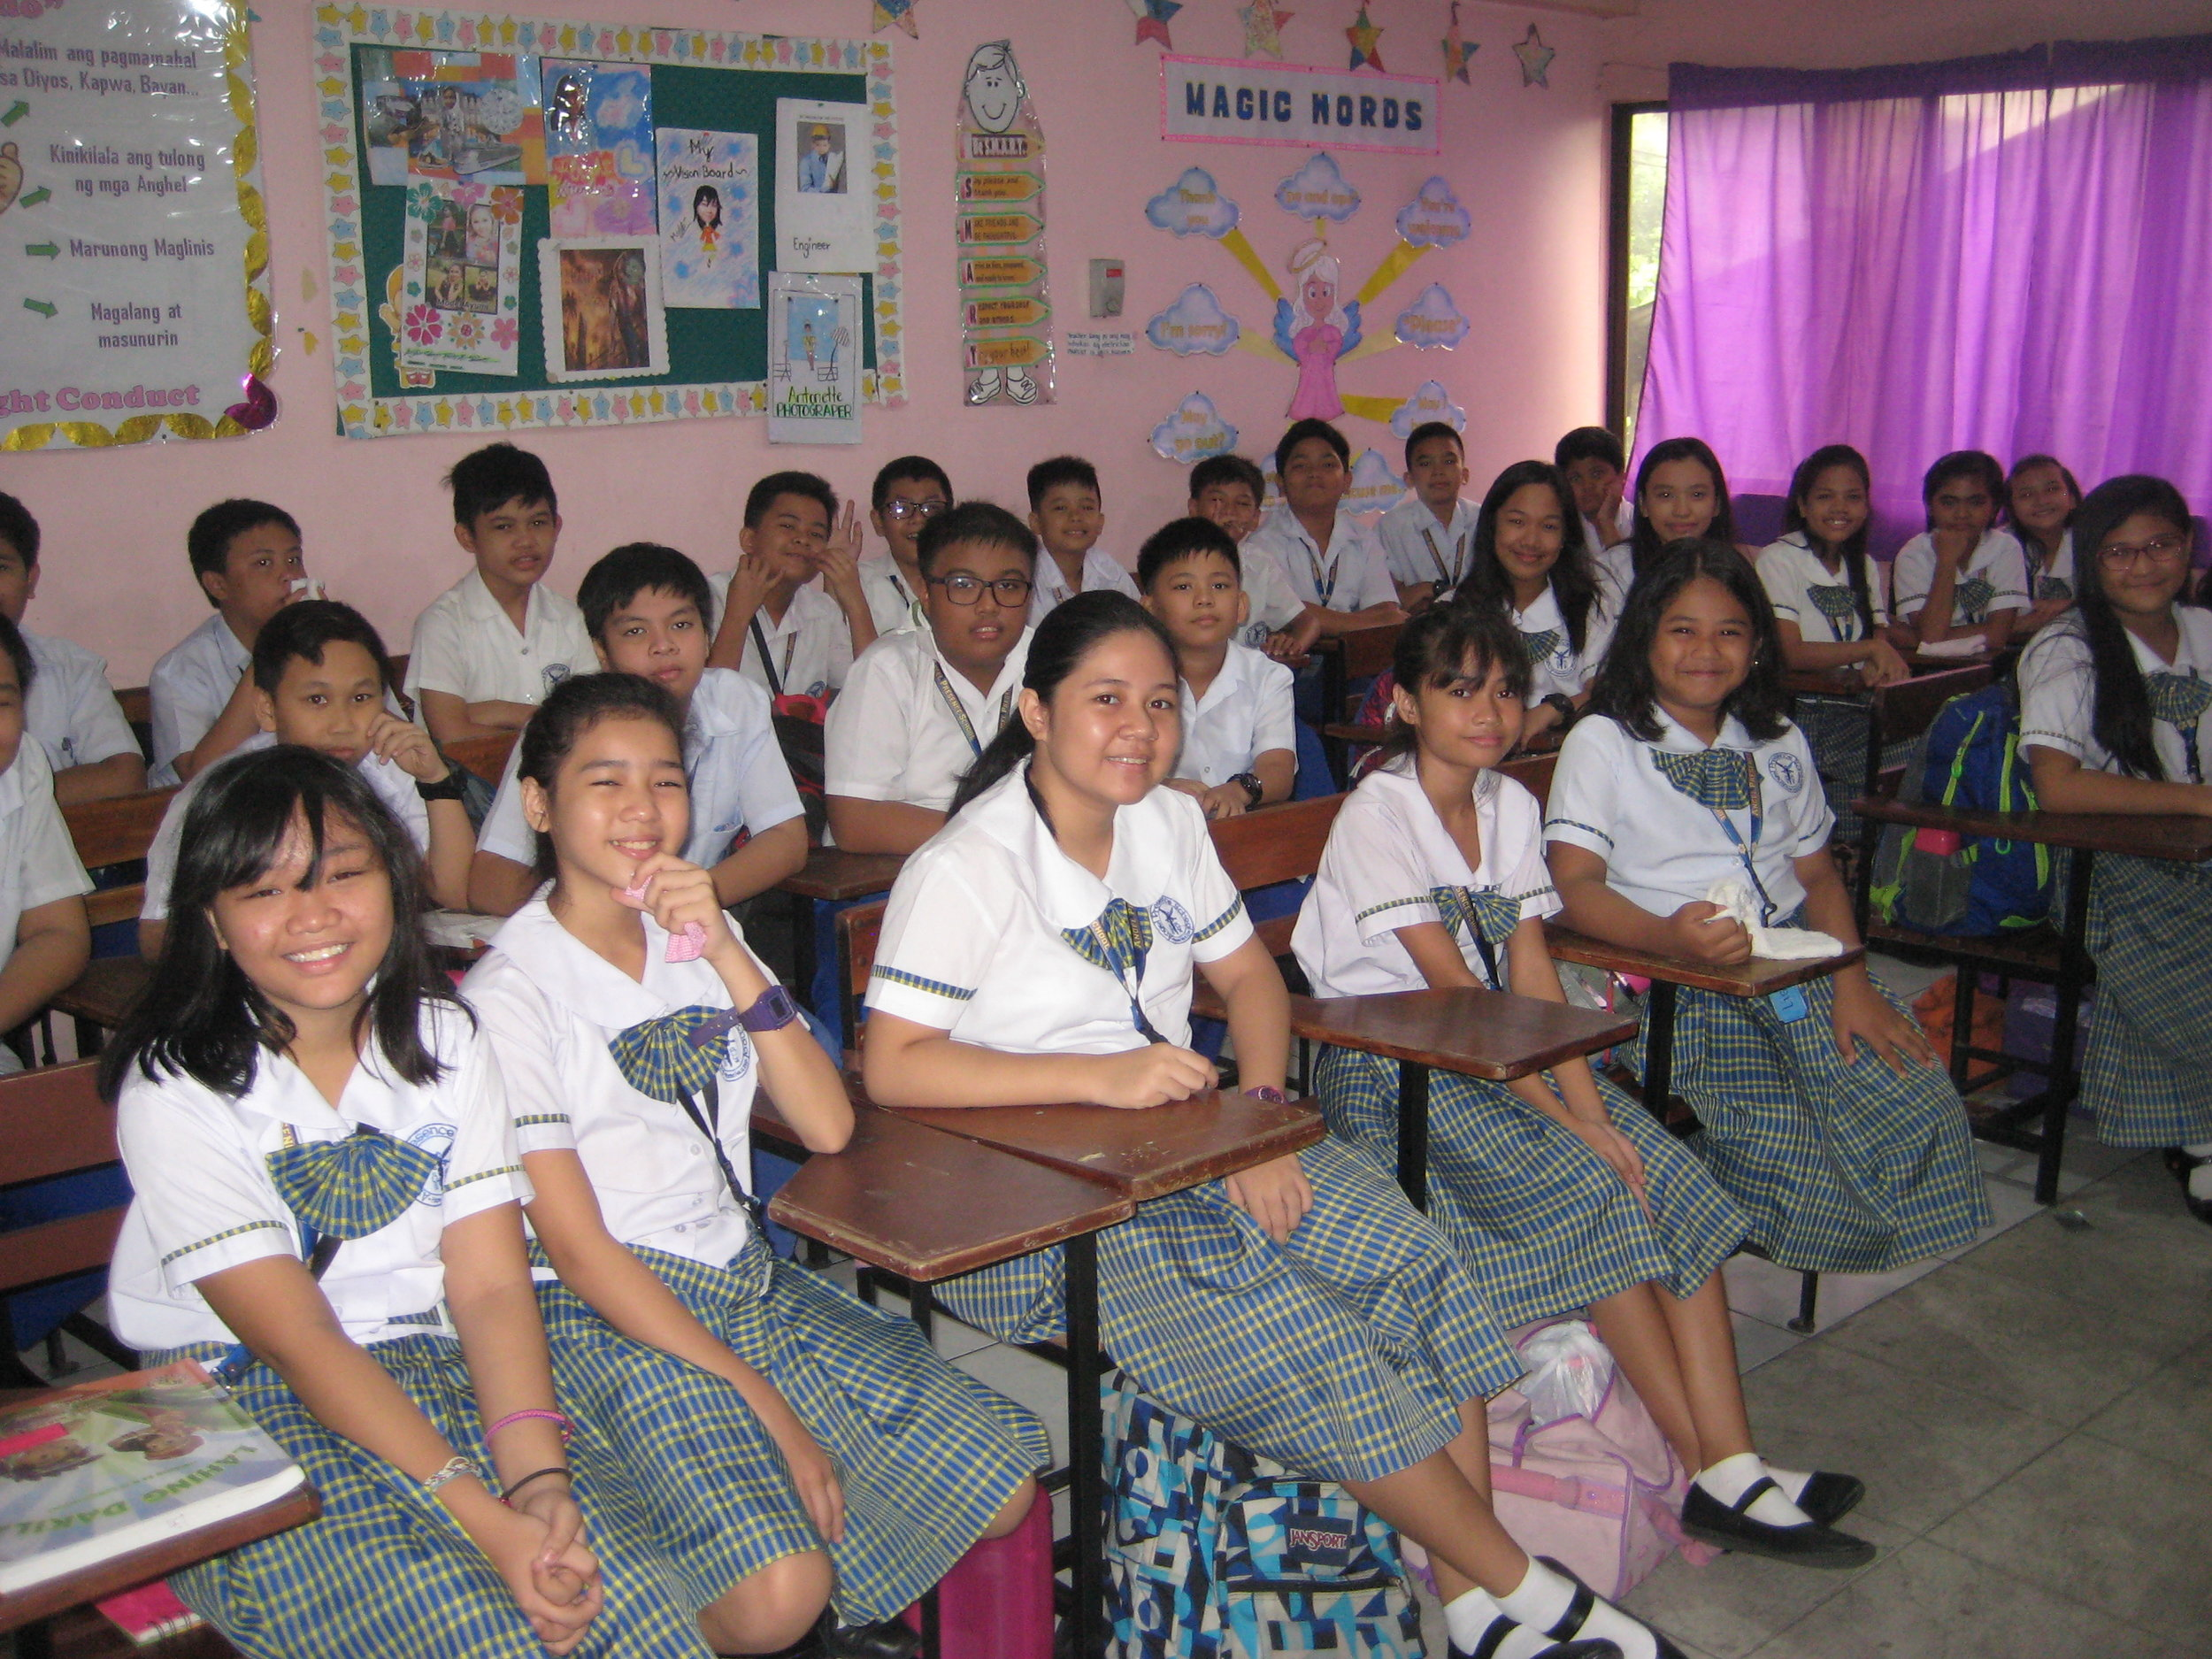 BBEF-supported students attend Angel Presence Foundation School, the local elementary school in Bagong Barrio.